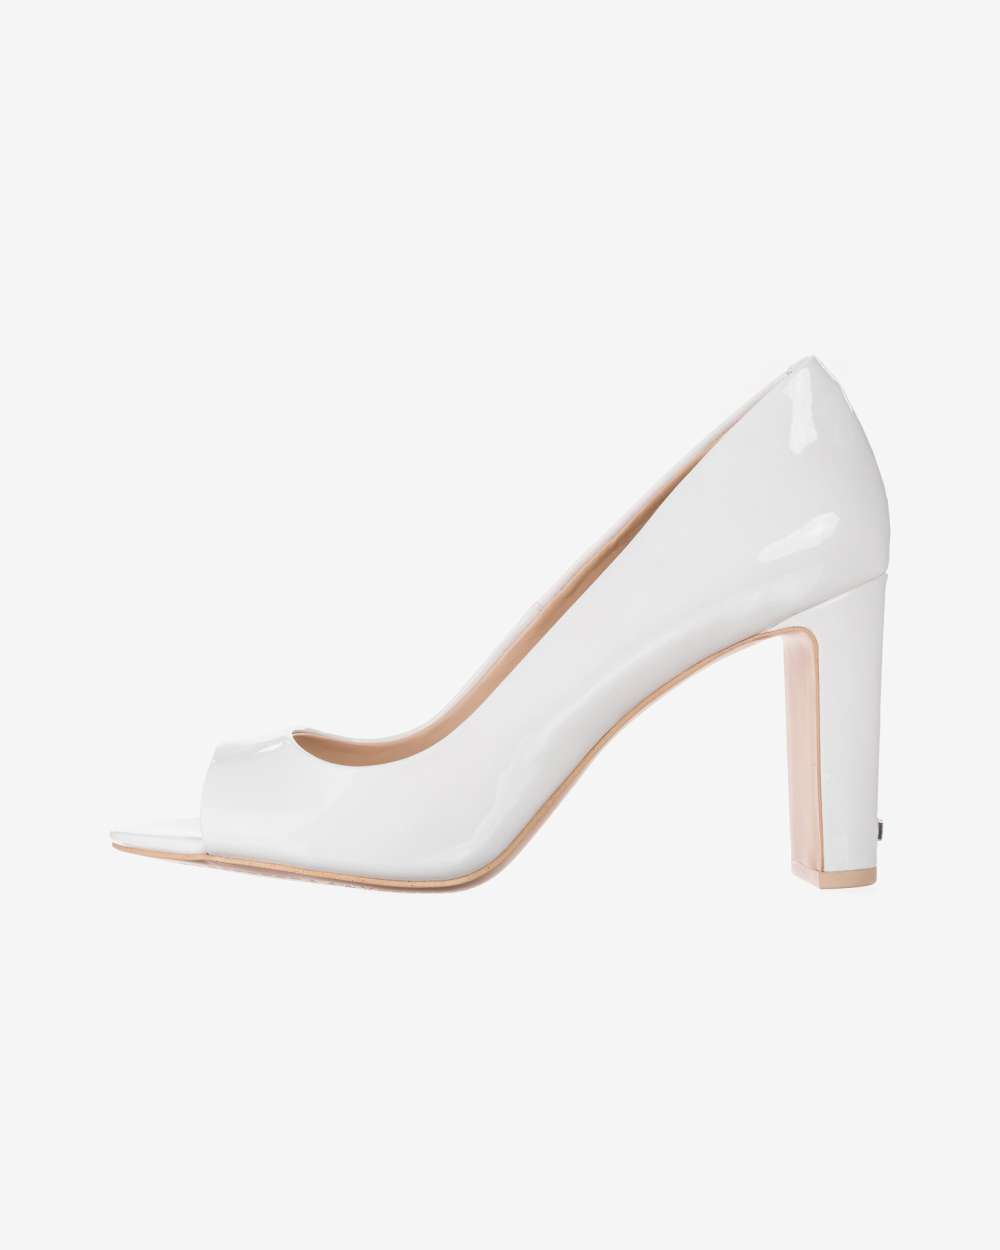 31f4c18fbd6 DKNY Womens Jade Leather Peep Toe Classic Pumps, White, Size 9.0 ...